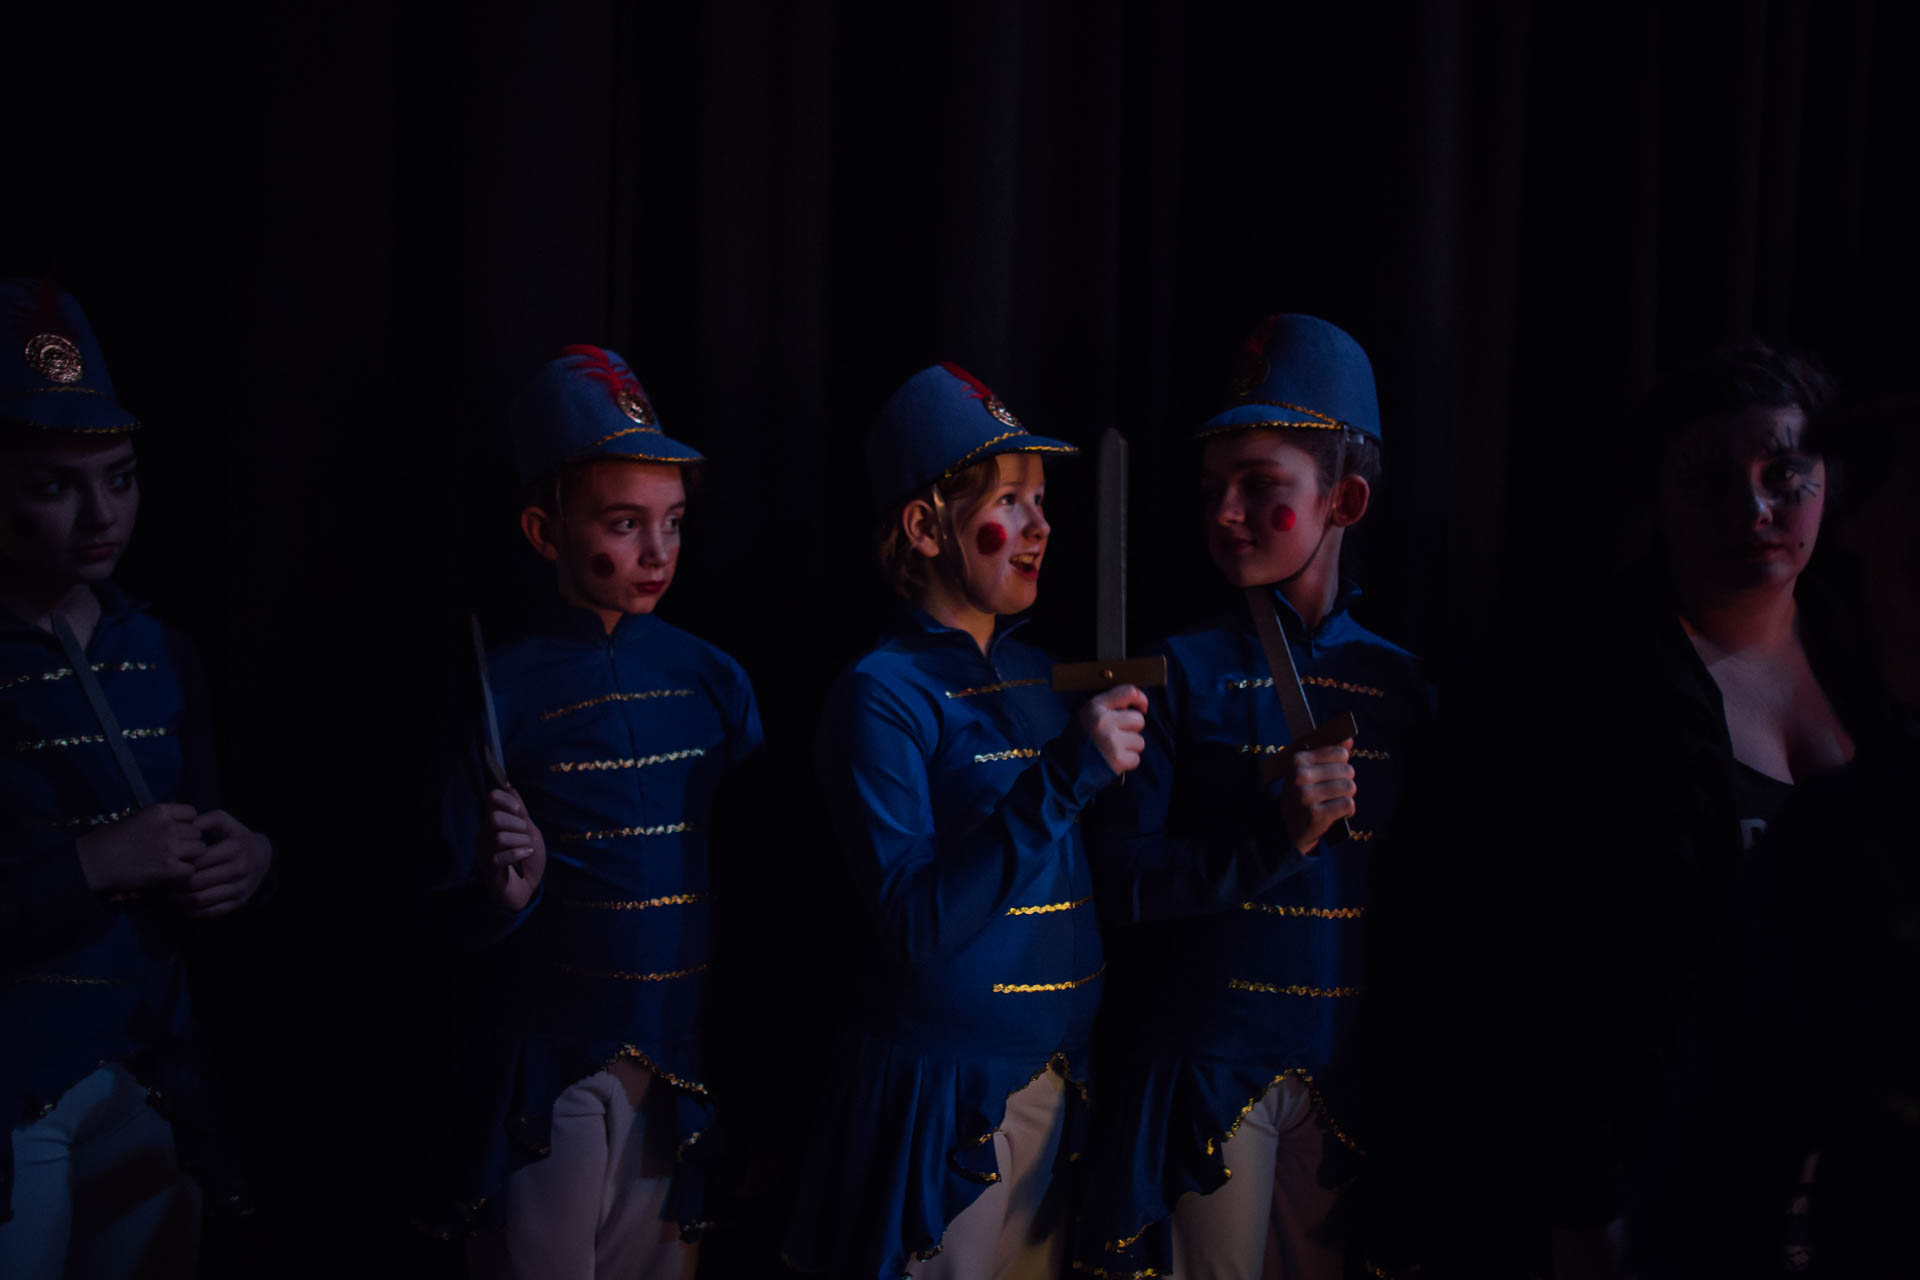 nutcracker-ballet-soldiers-side-stage-6354